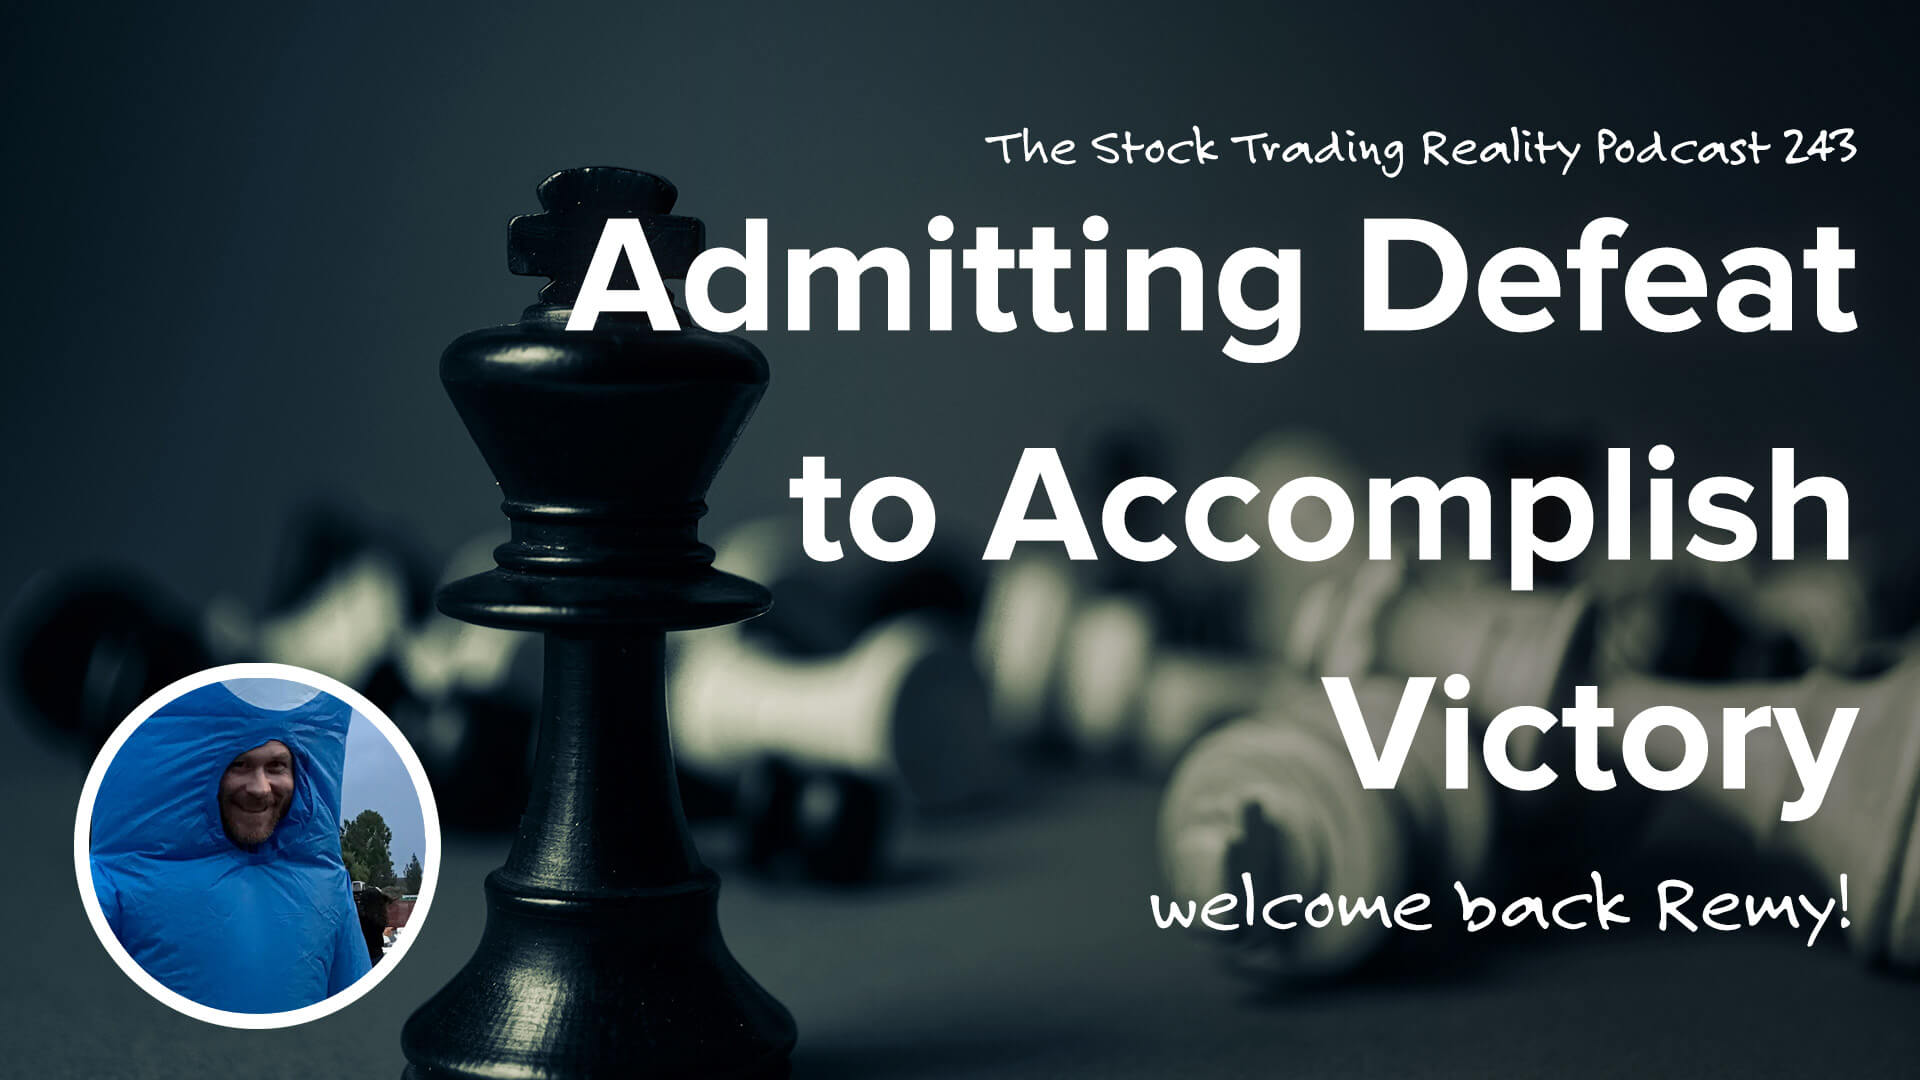 STR 243: Admitting Defeat to Accomplishing Victory